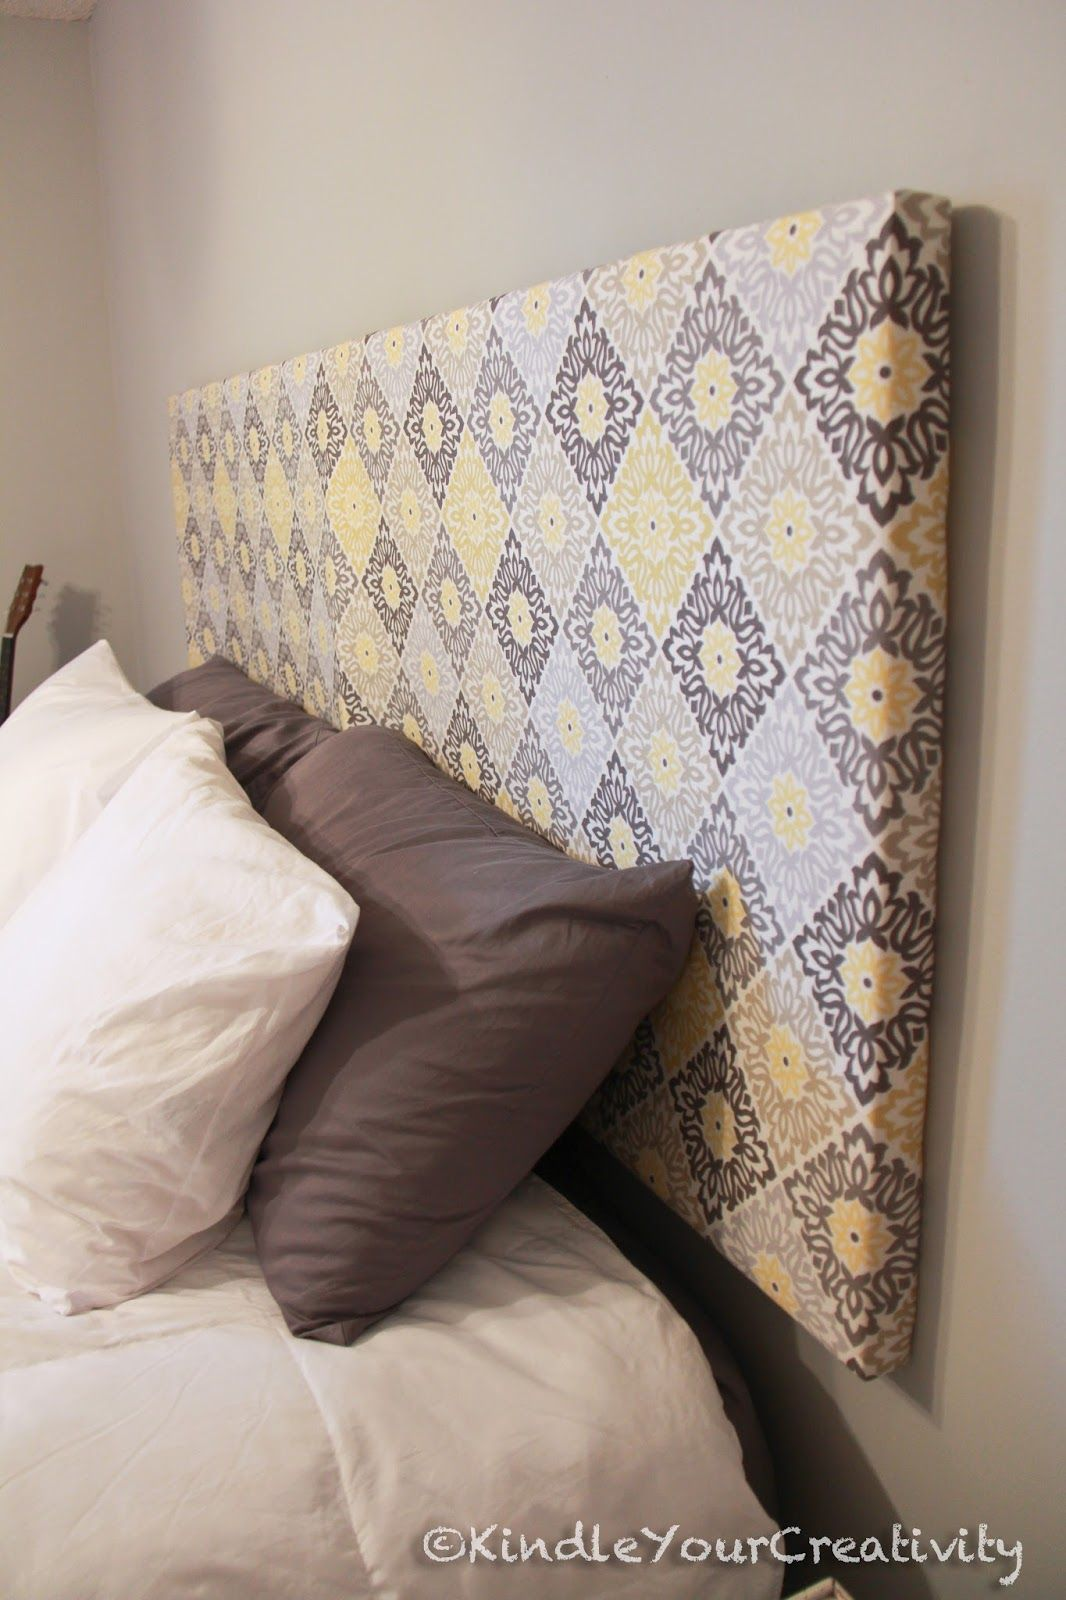 Master Bedroom Redo Diy Fabric Headboard Diy Fabric Headboard Master Bedroom Redo Fabric Headboard